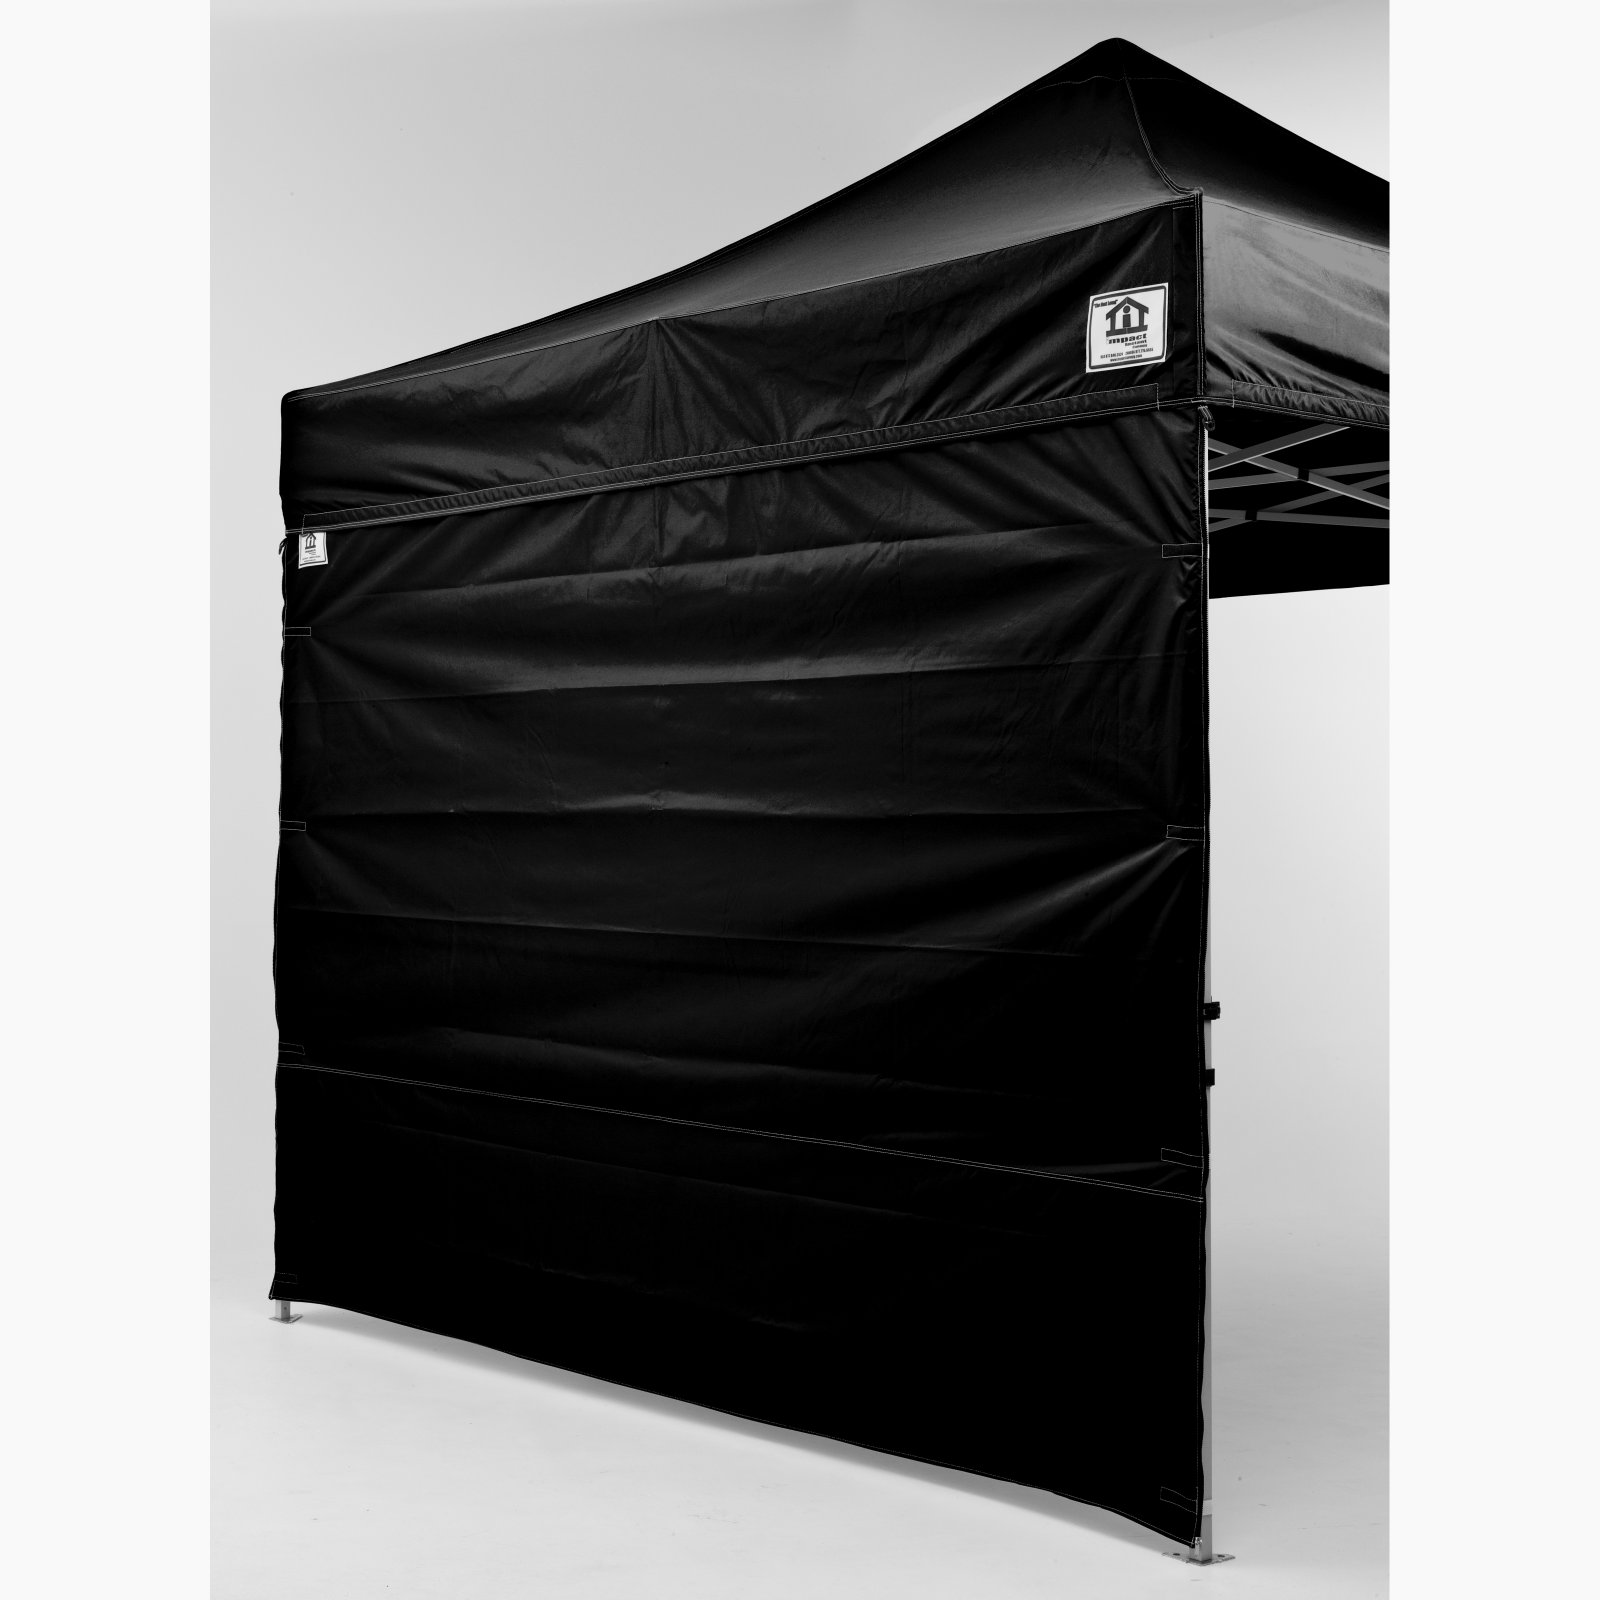 Impact Canopy 10x10 ft. Pop Up Canopy Tent Straight Leg Canopy Sidewalls - Set of  sc 1 st  Walmart & Impact Canopy 10x10 ft. Pop Up Canopy Tent Straight Leg Canopy ...